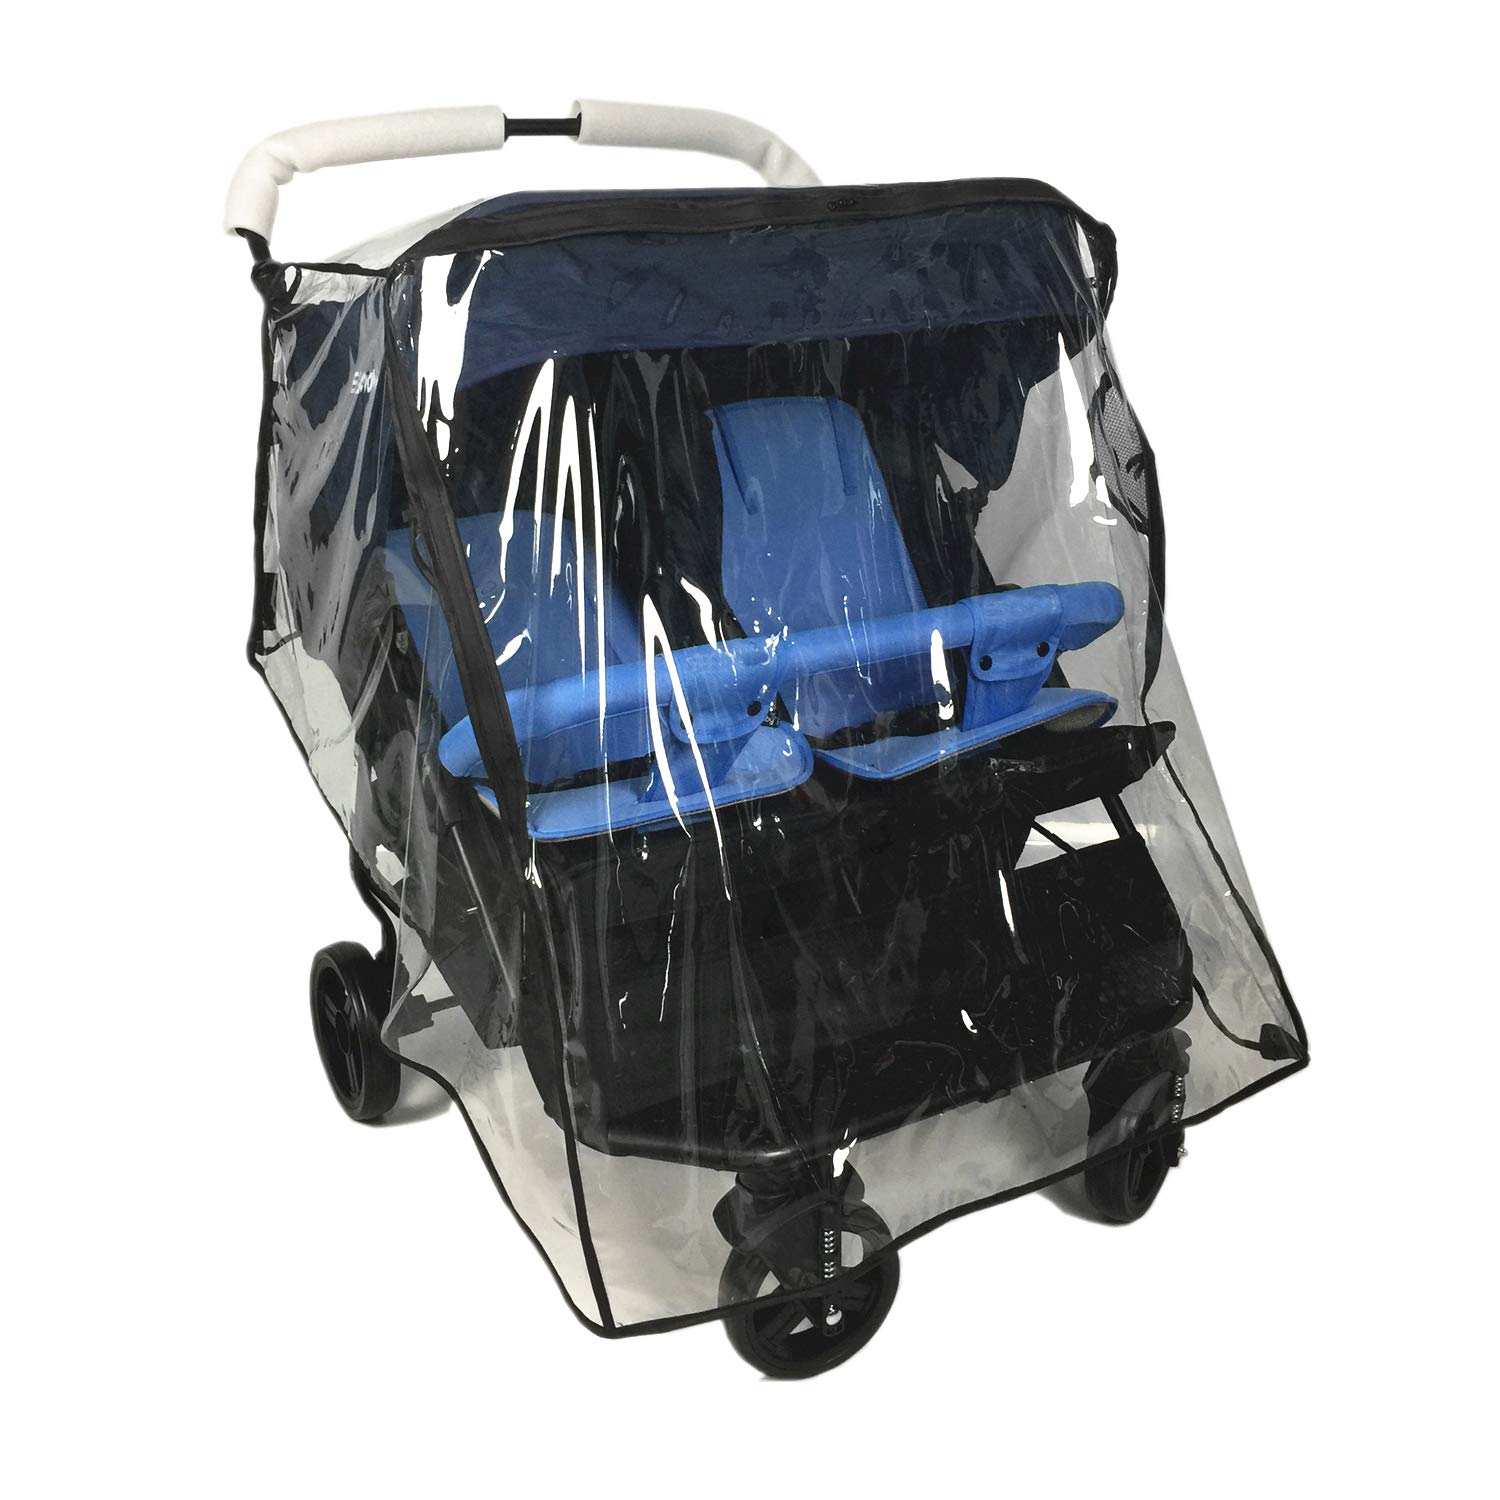 Weather Shield for Double Stroller Universal Side by Side Baby Stroller rain Cover